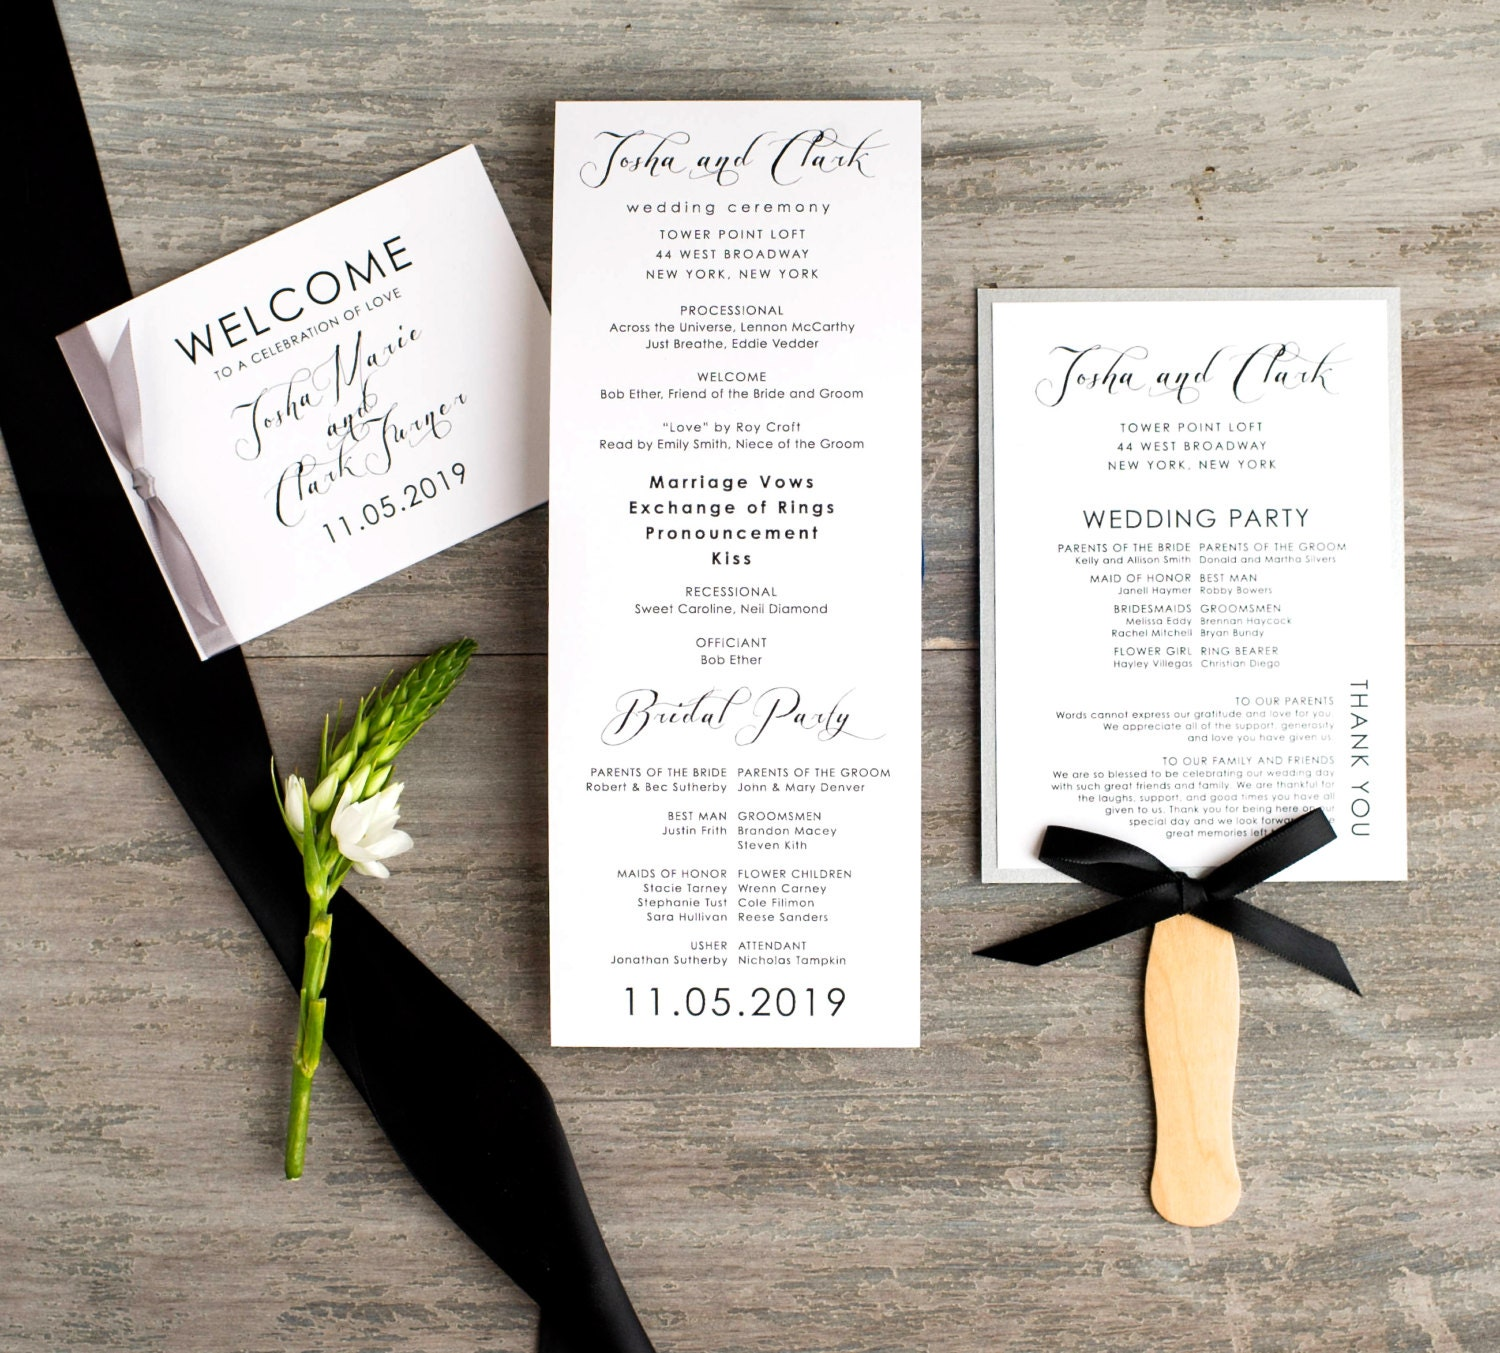 Modern Wedding Ceremony Fans Booklet Programs With Ribbon